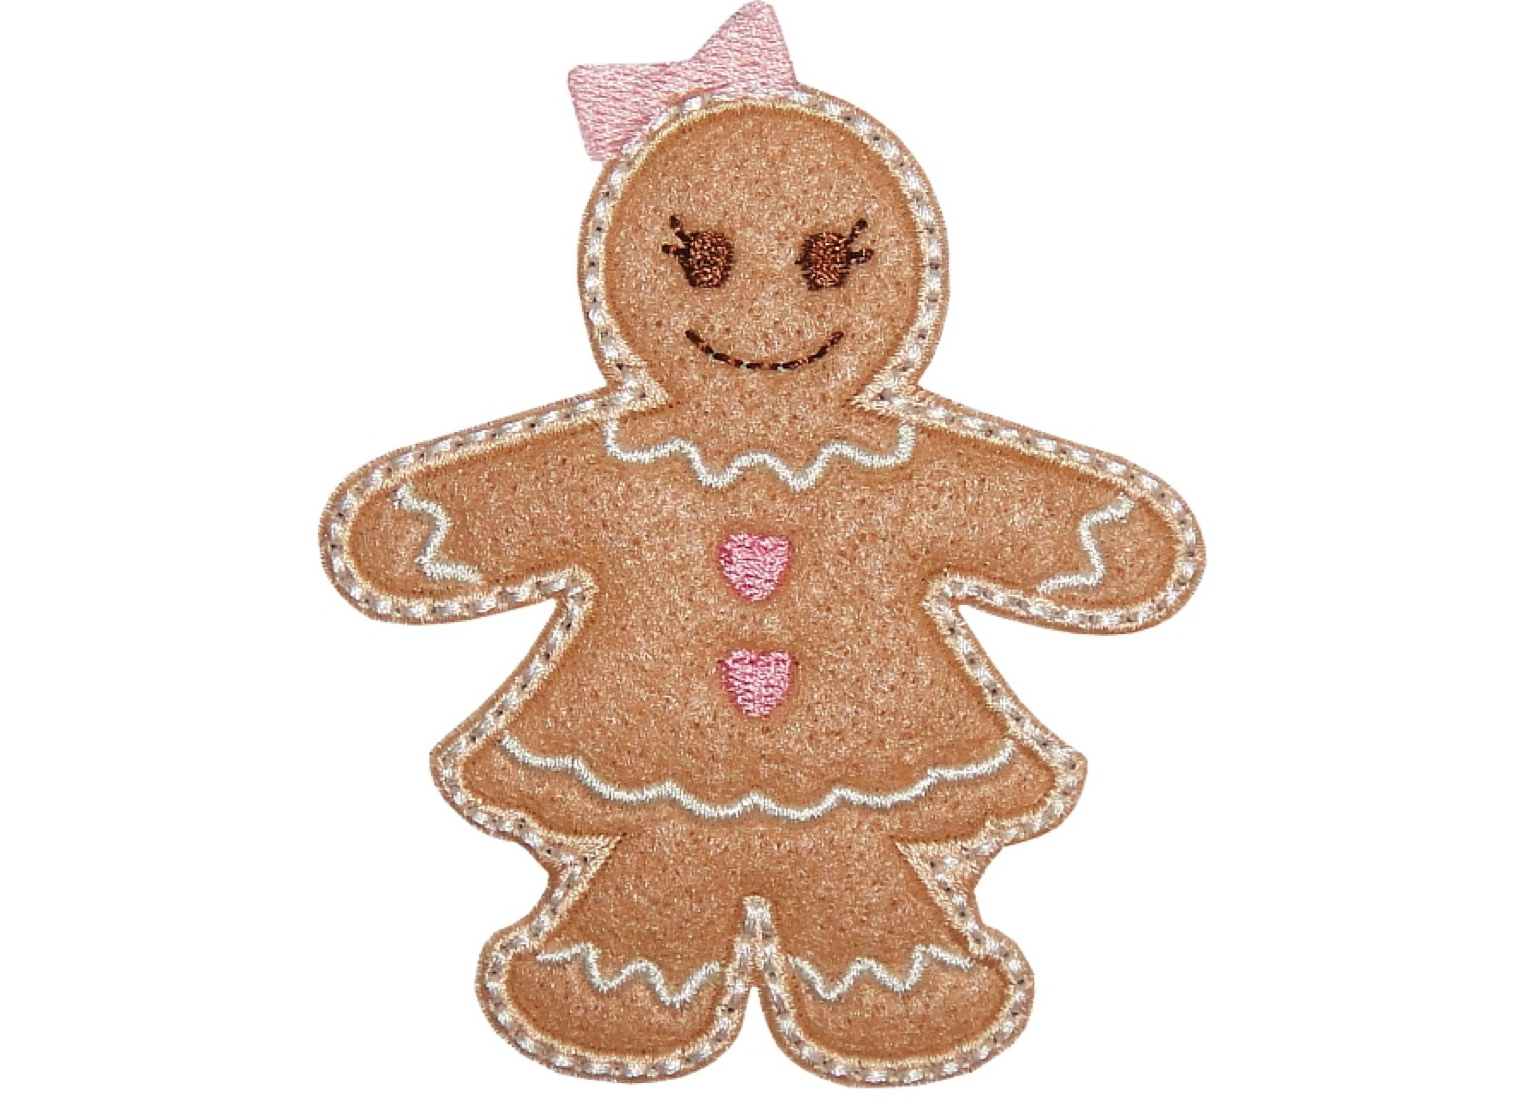 Gingerbread Woman Template Gingerbread girl